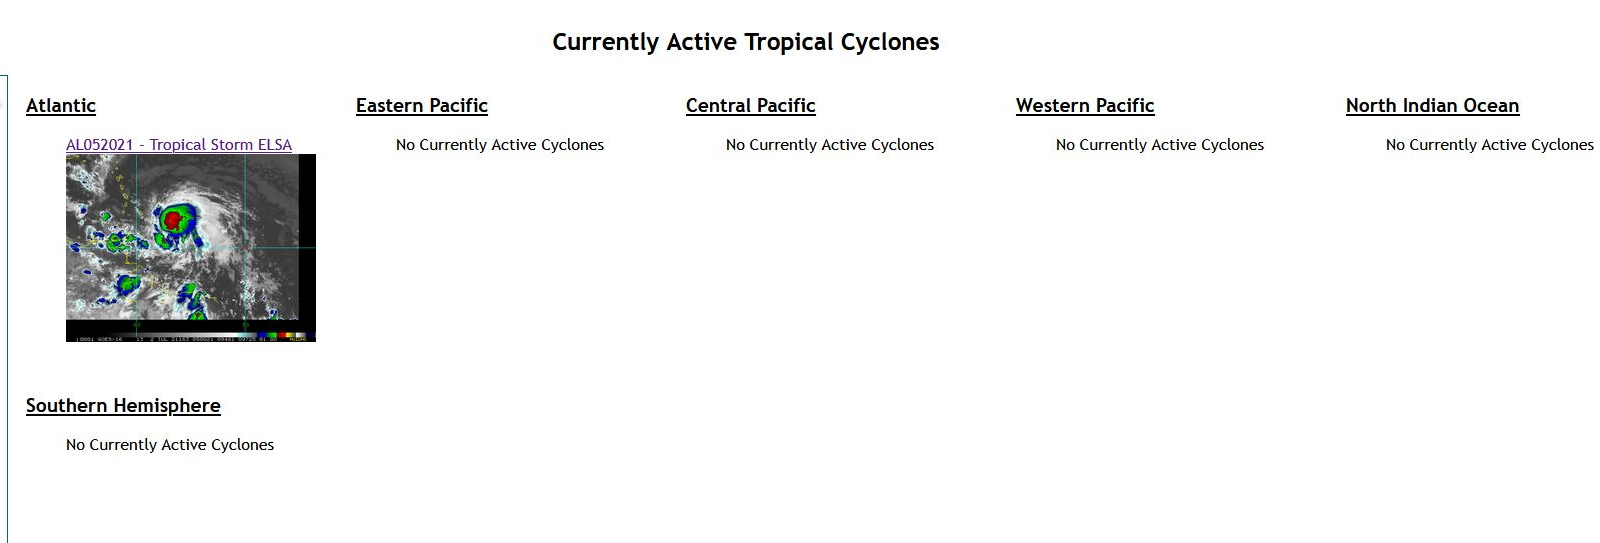 05L(ELSA) THE SOLE TROPICAL CYCLONE BEING CURRENTLY MONITORED WORLDWIDE.